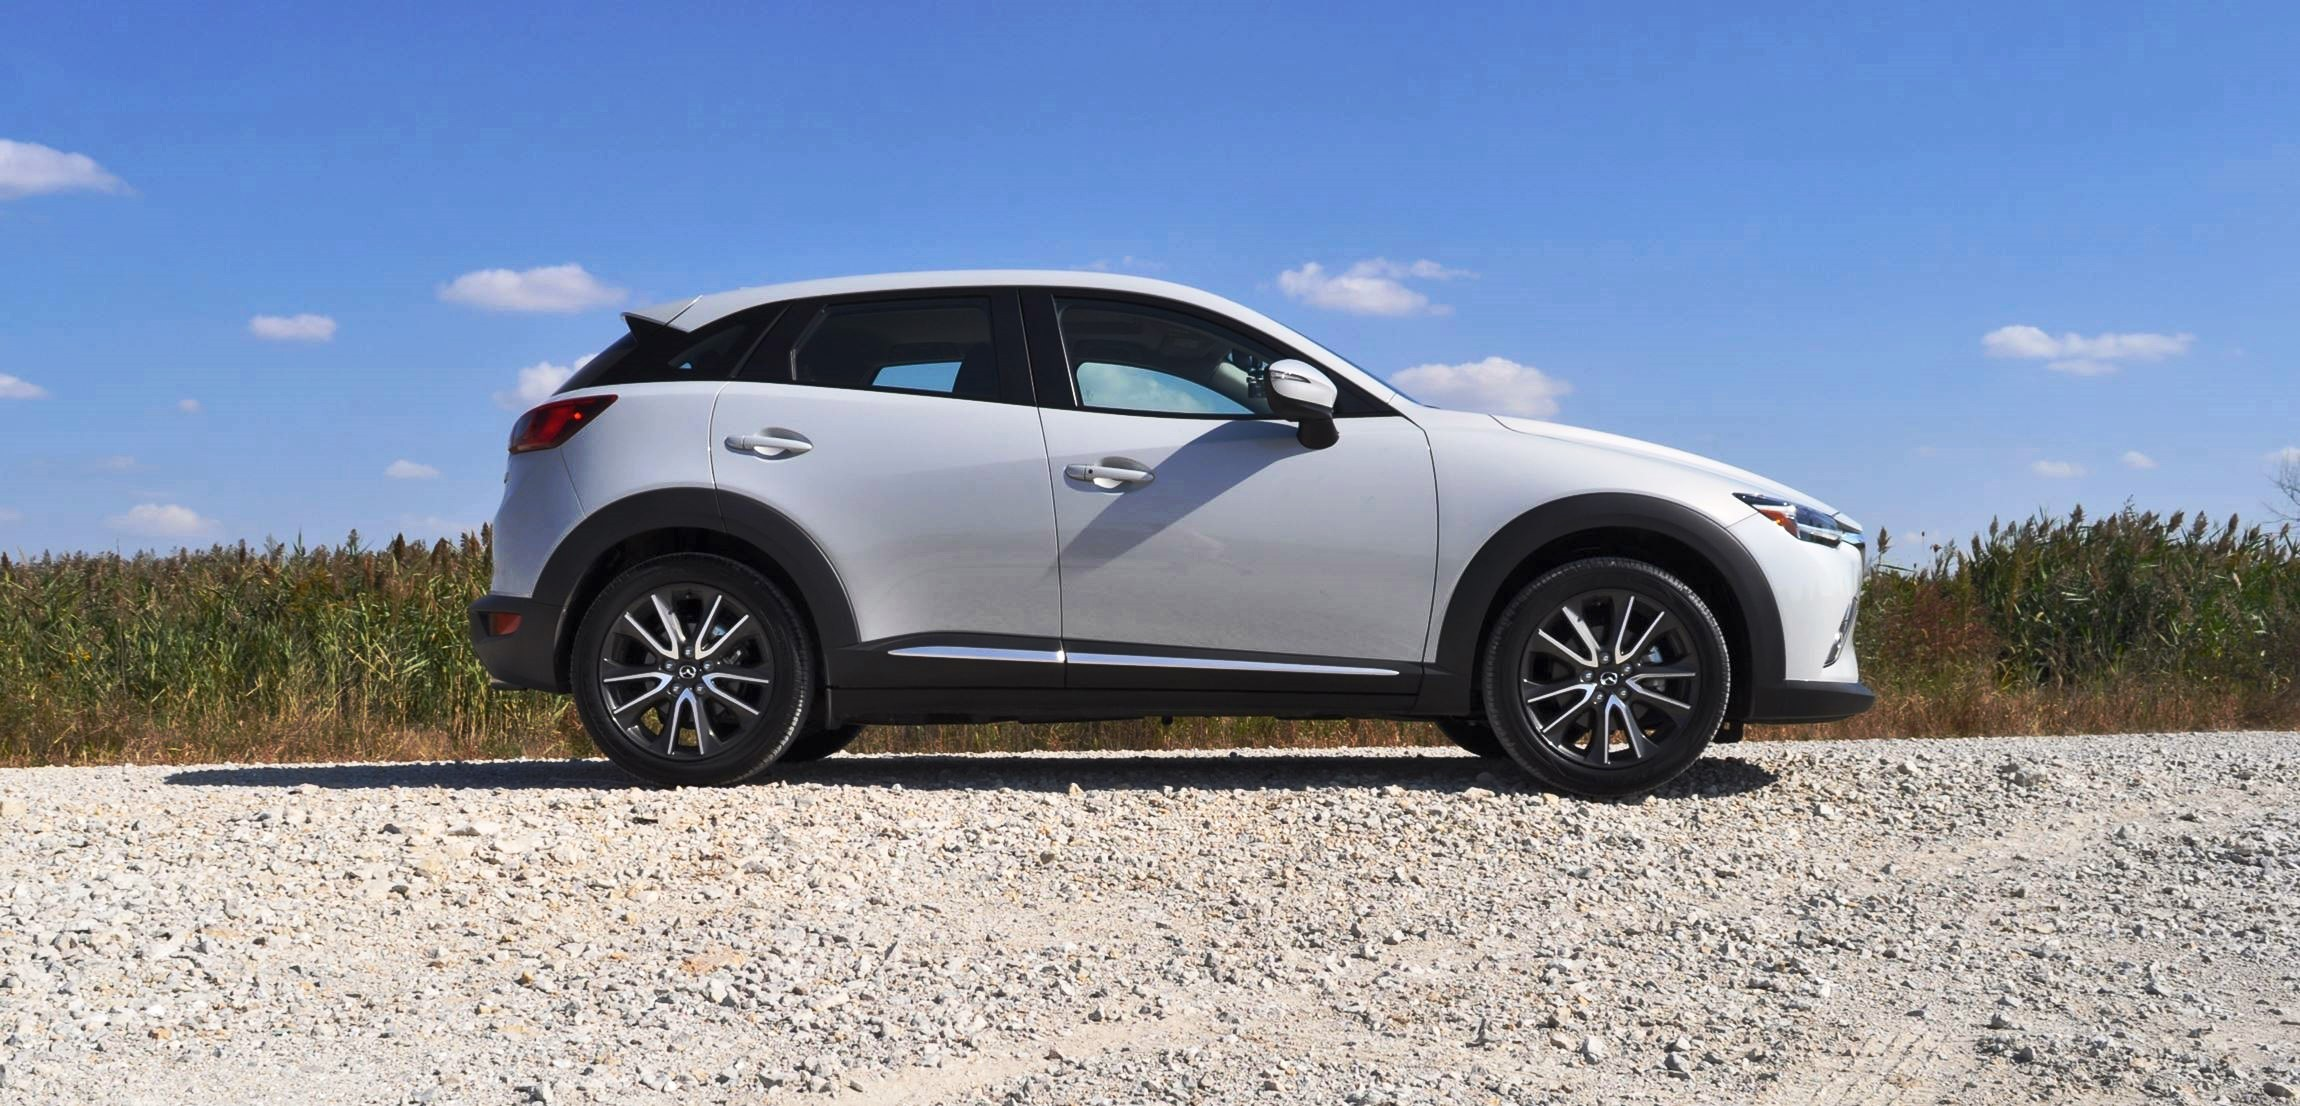 2016 mazda cx 3 gt review 32. Black Bedroom Furniture Sets. Home Design Ideas